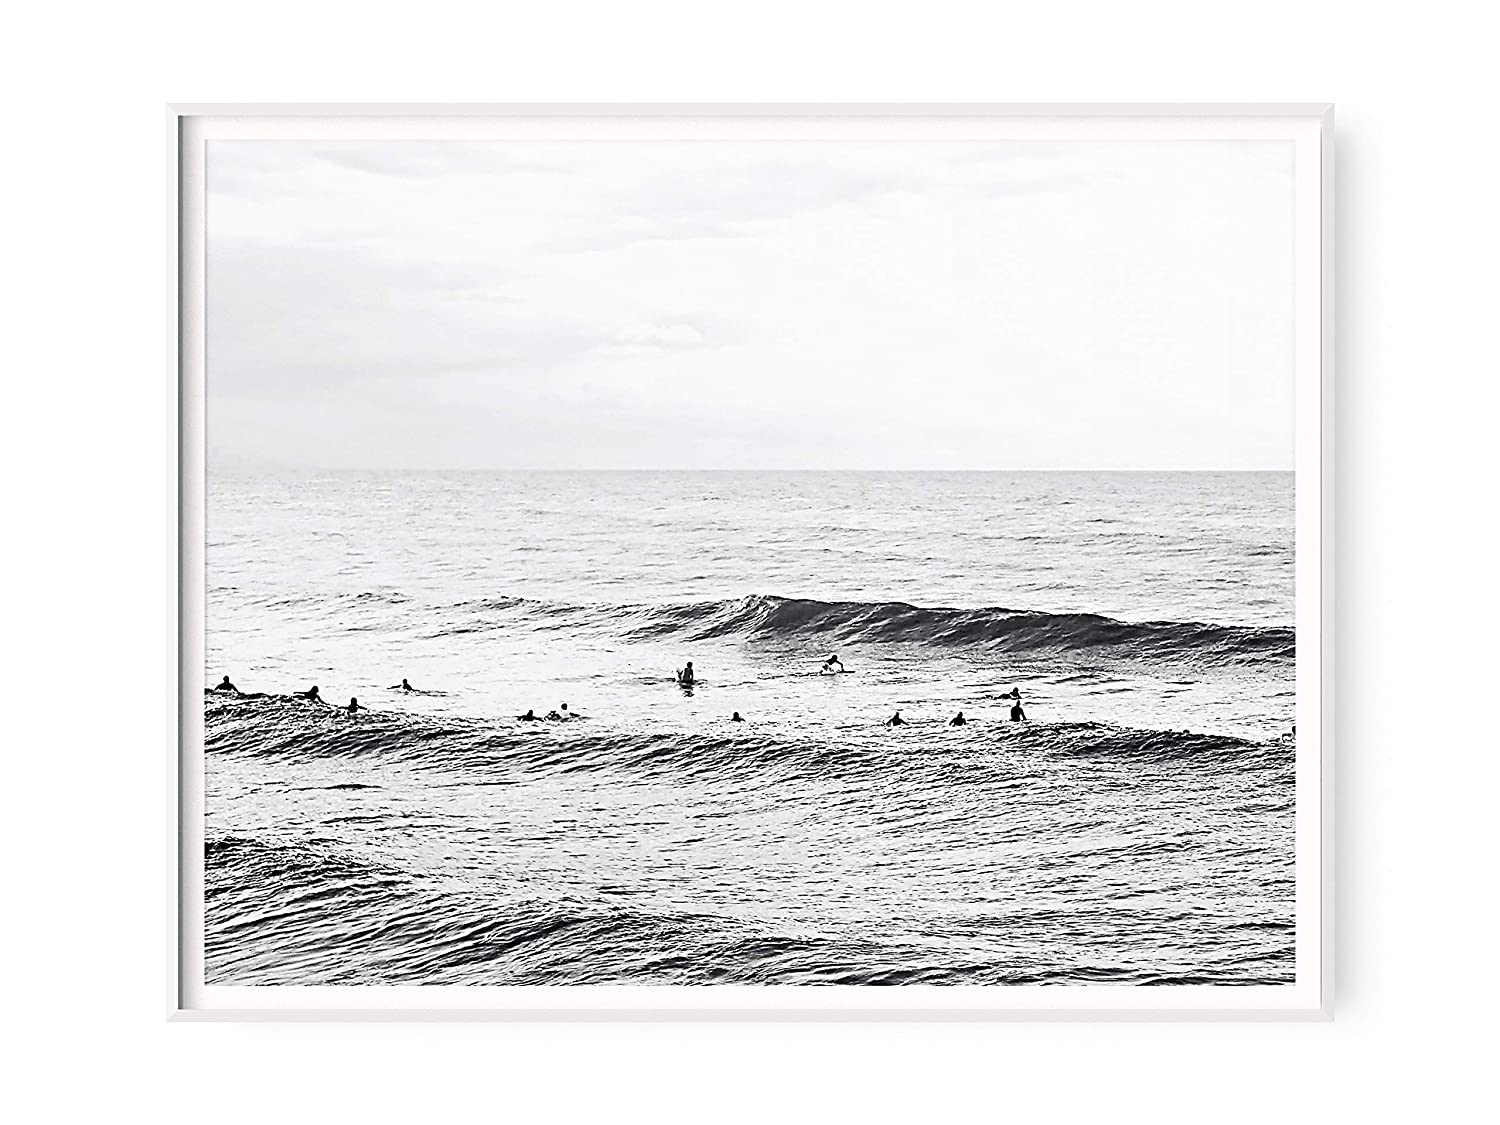 Black and White Hawaii Surf Poster | Vintage Ocean Waves Surfing Photo Print from Amazon